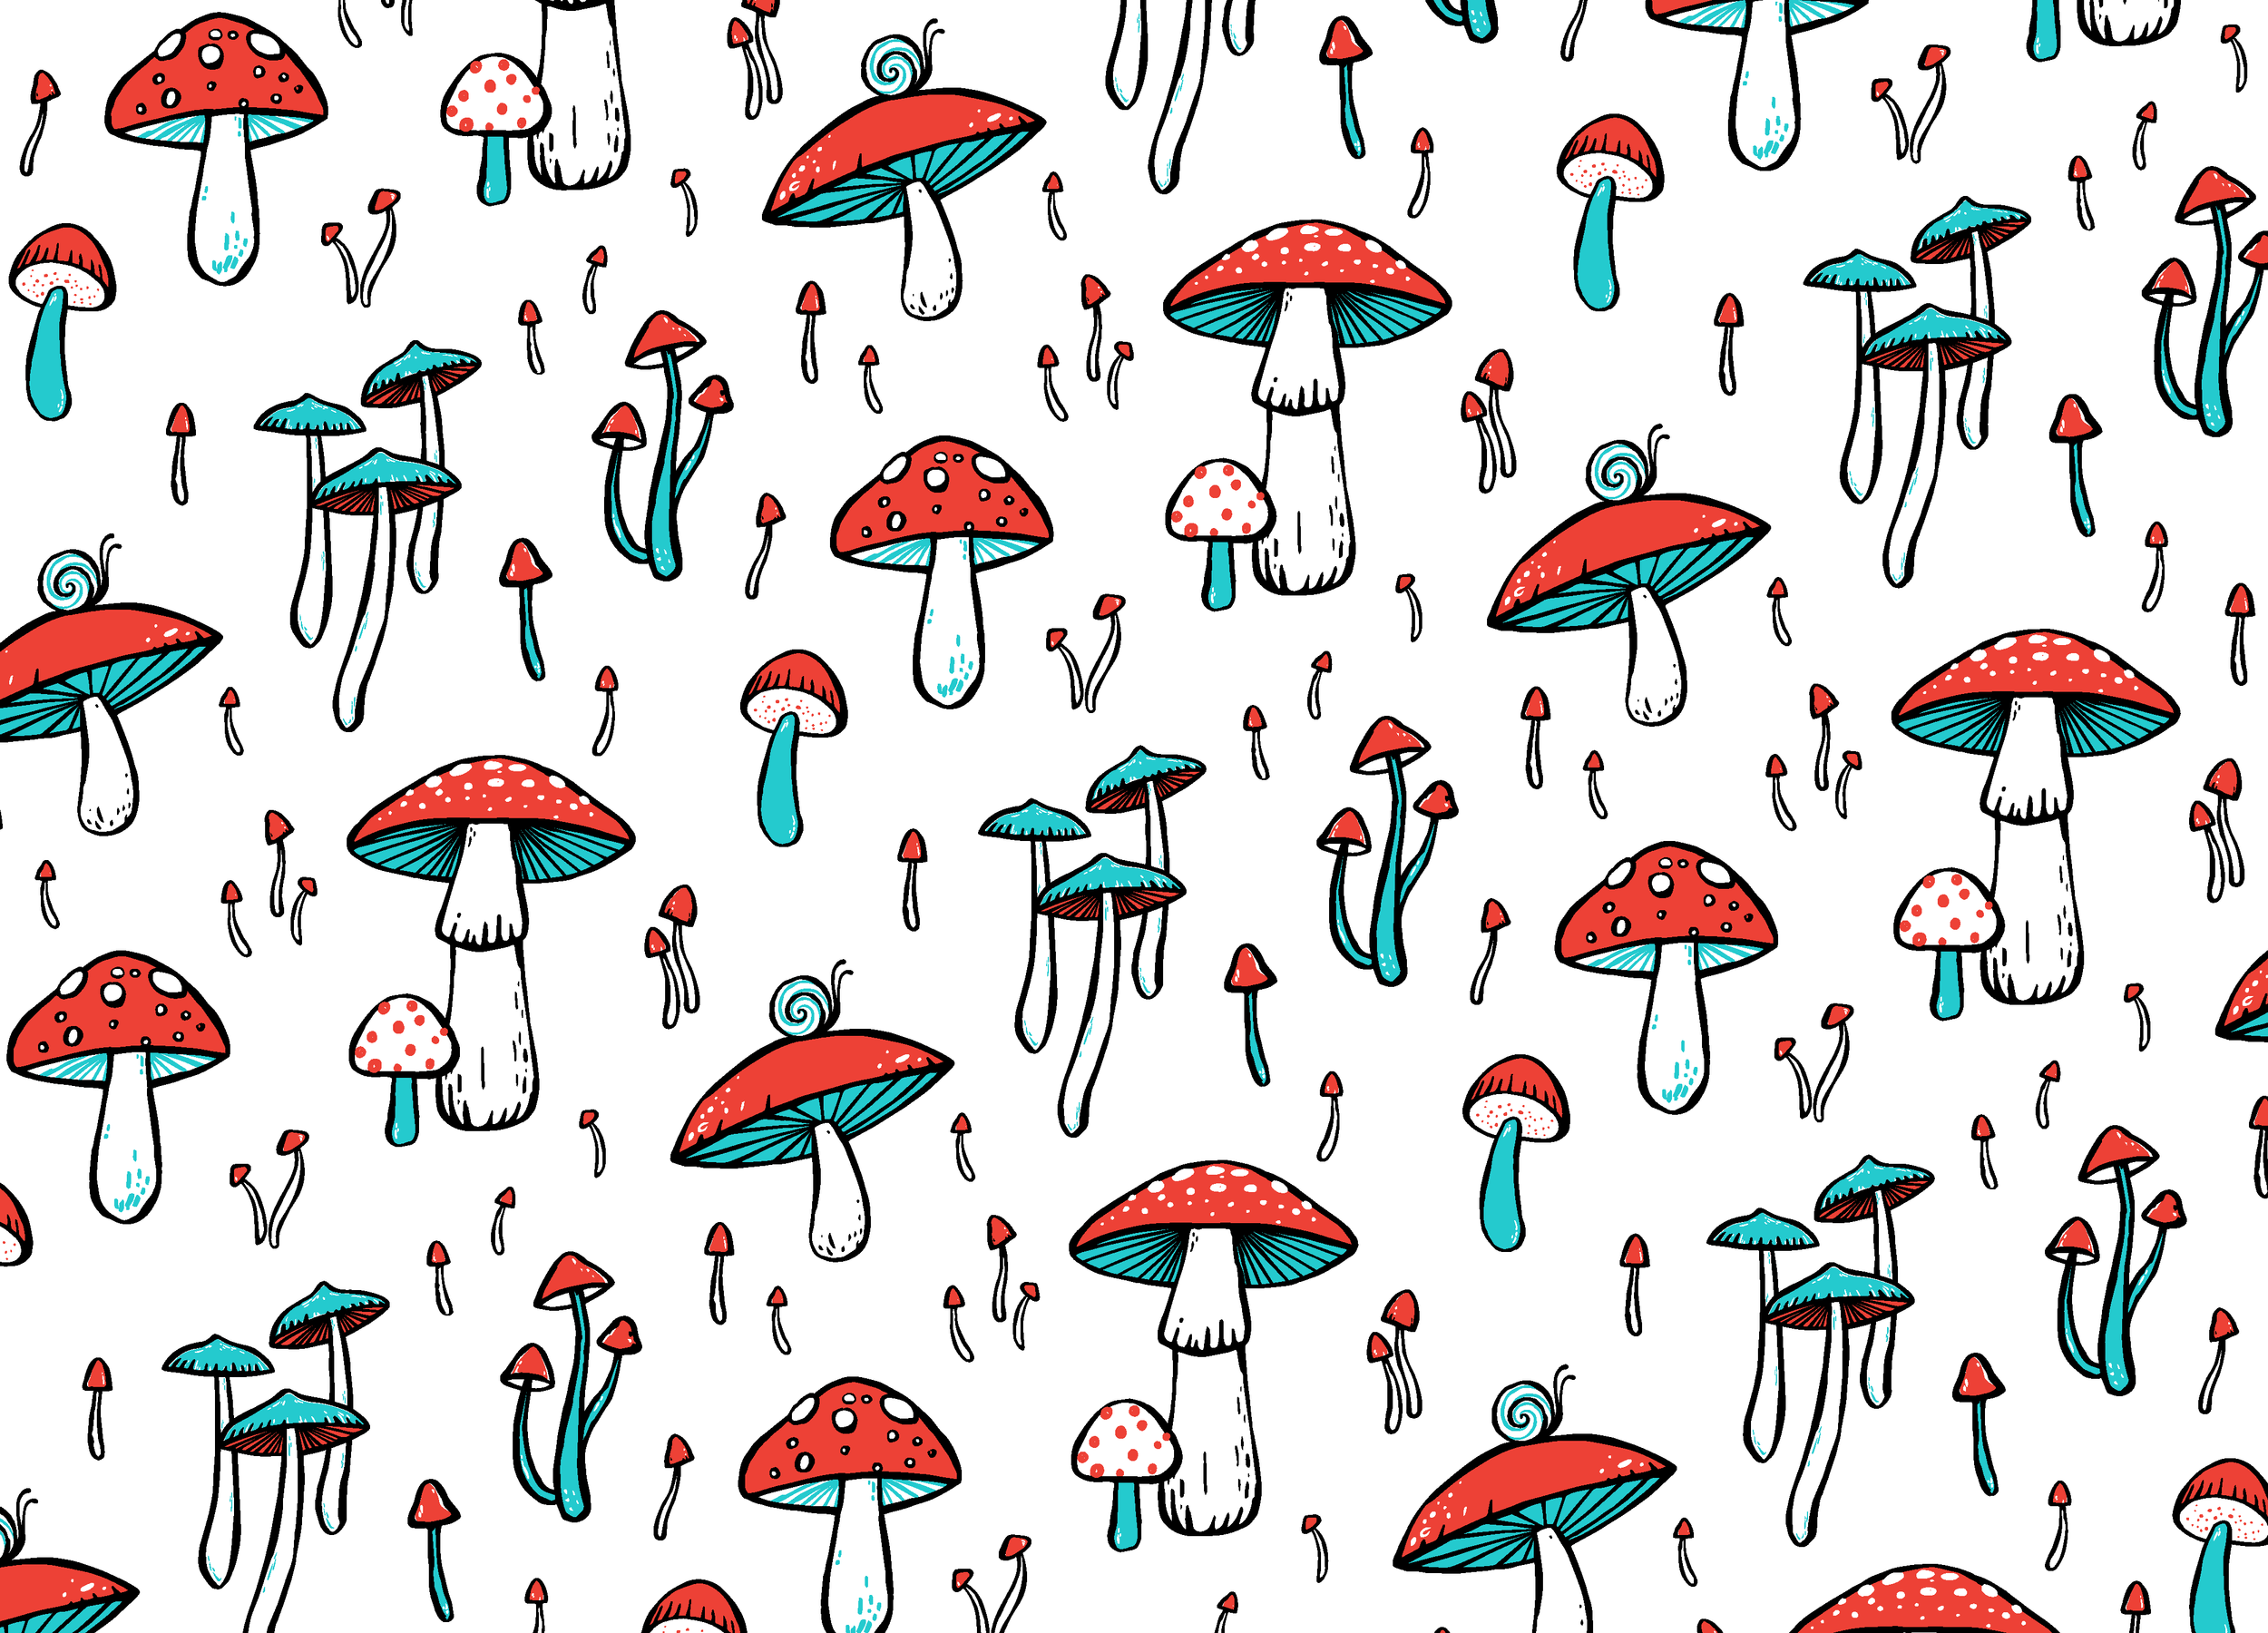 Mushrooms_Pattern-02.png